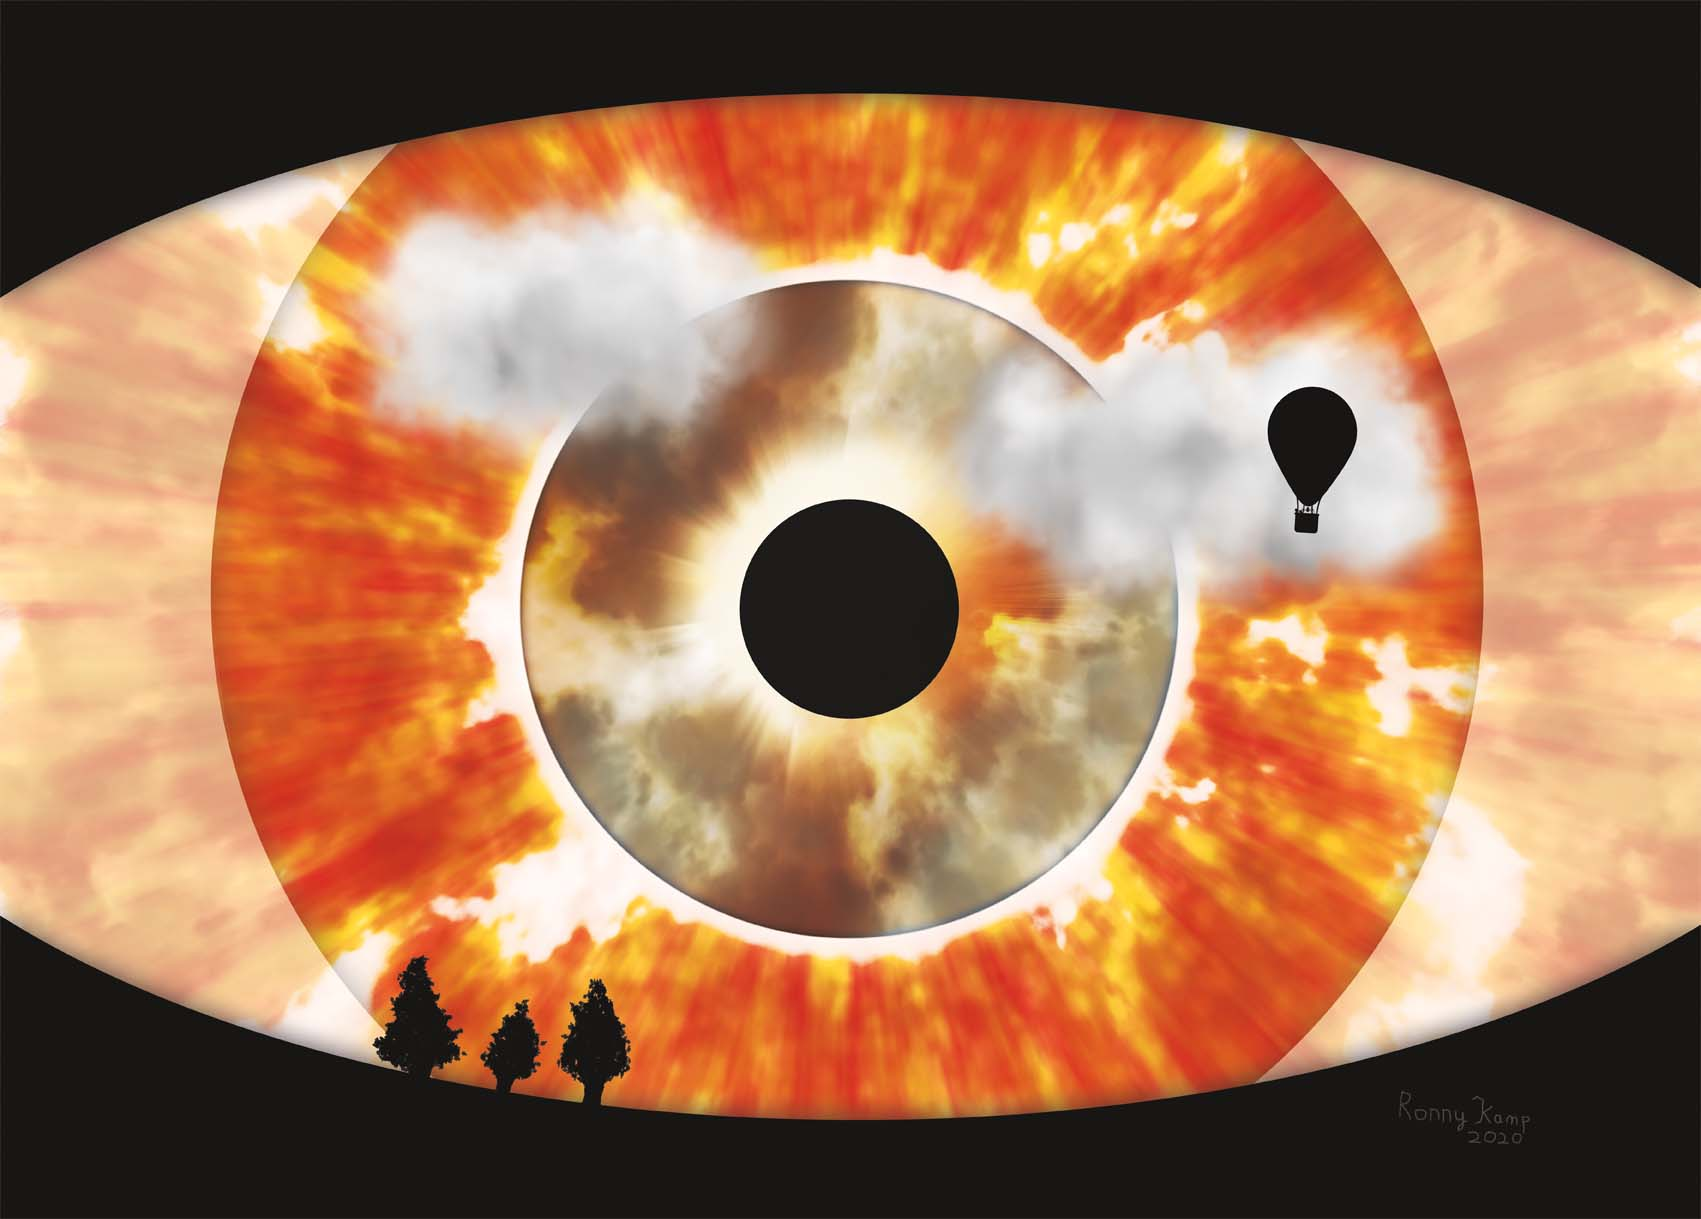 Flaming eye with trees and a hot air balloon.